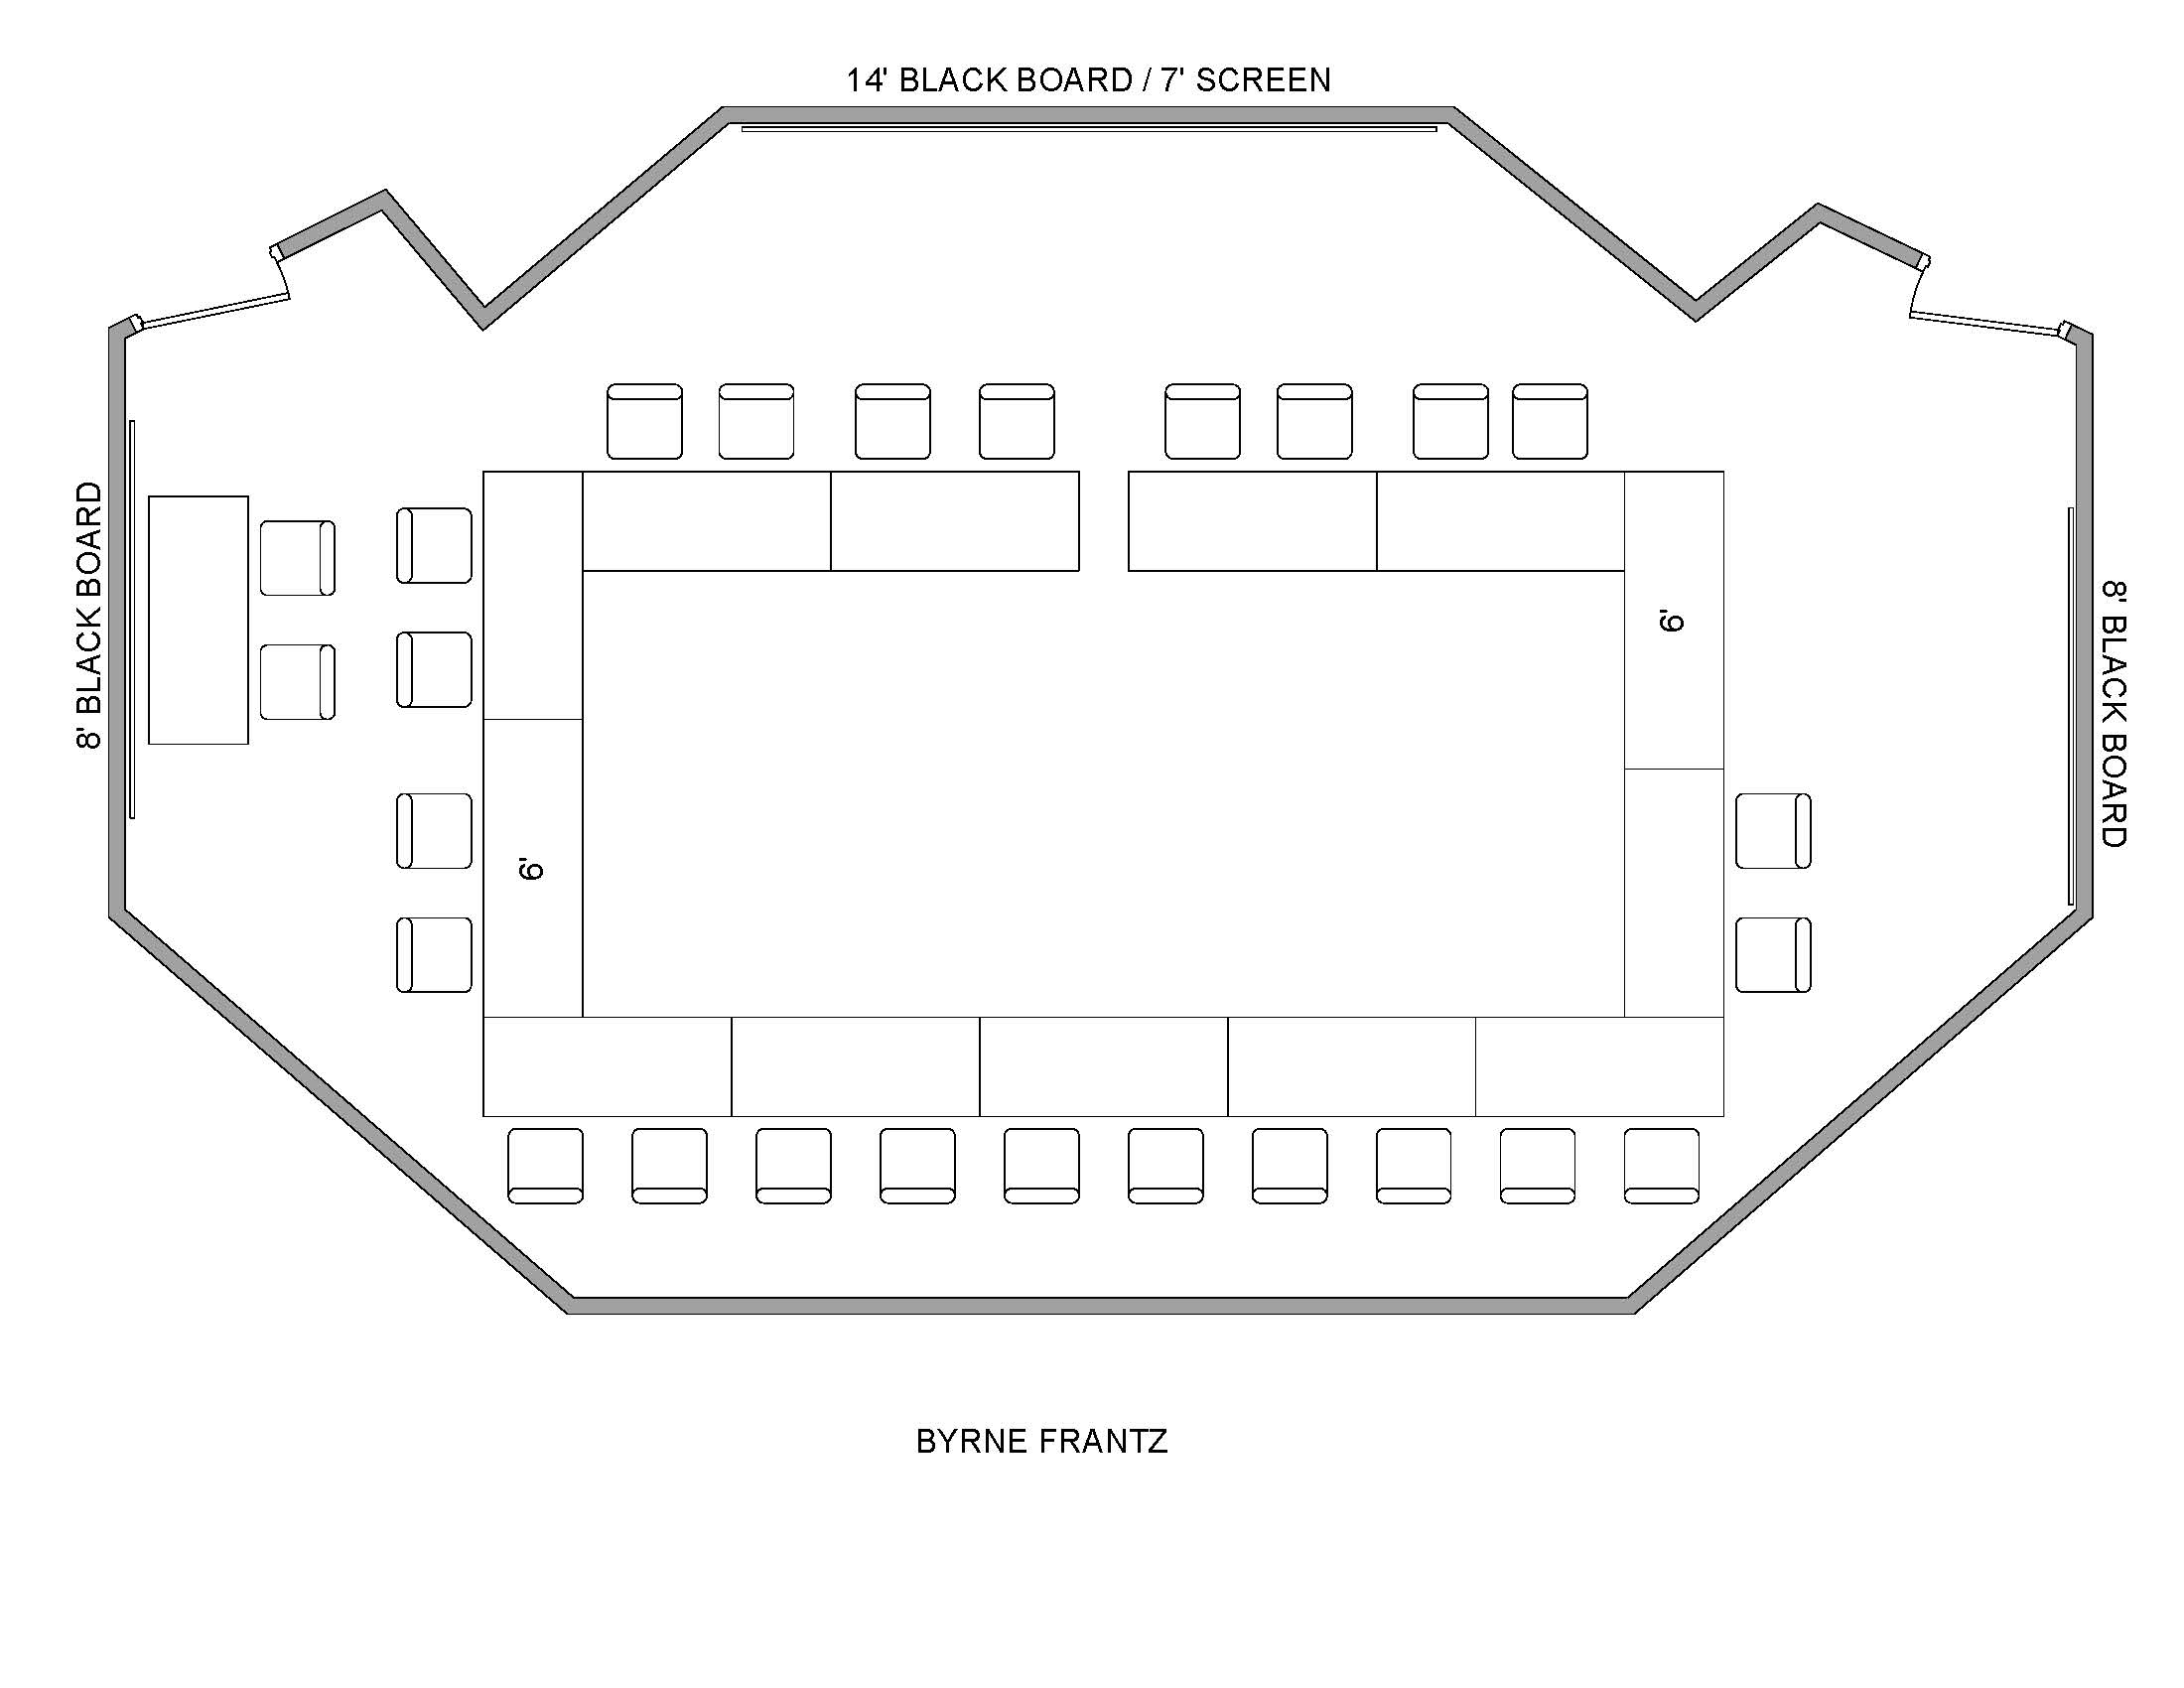 Tuck events facilities byrne frantz classroom diagrams event planning pooptronica Image collections